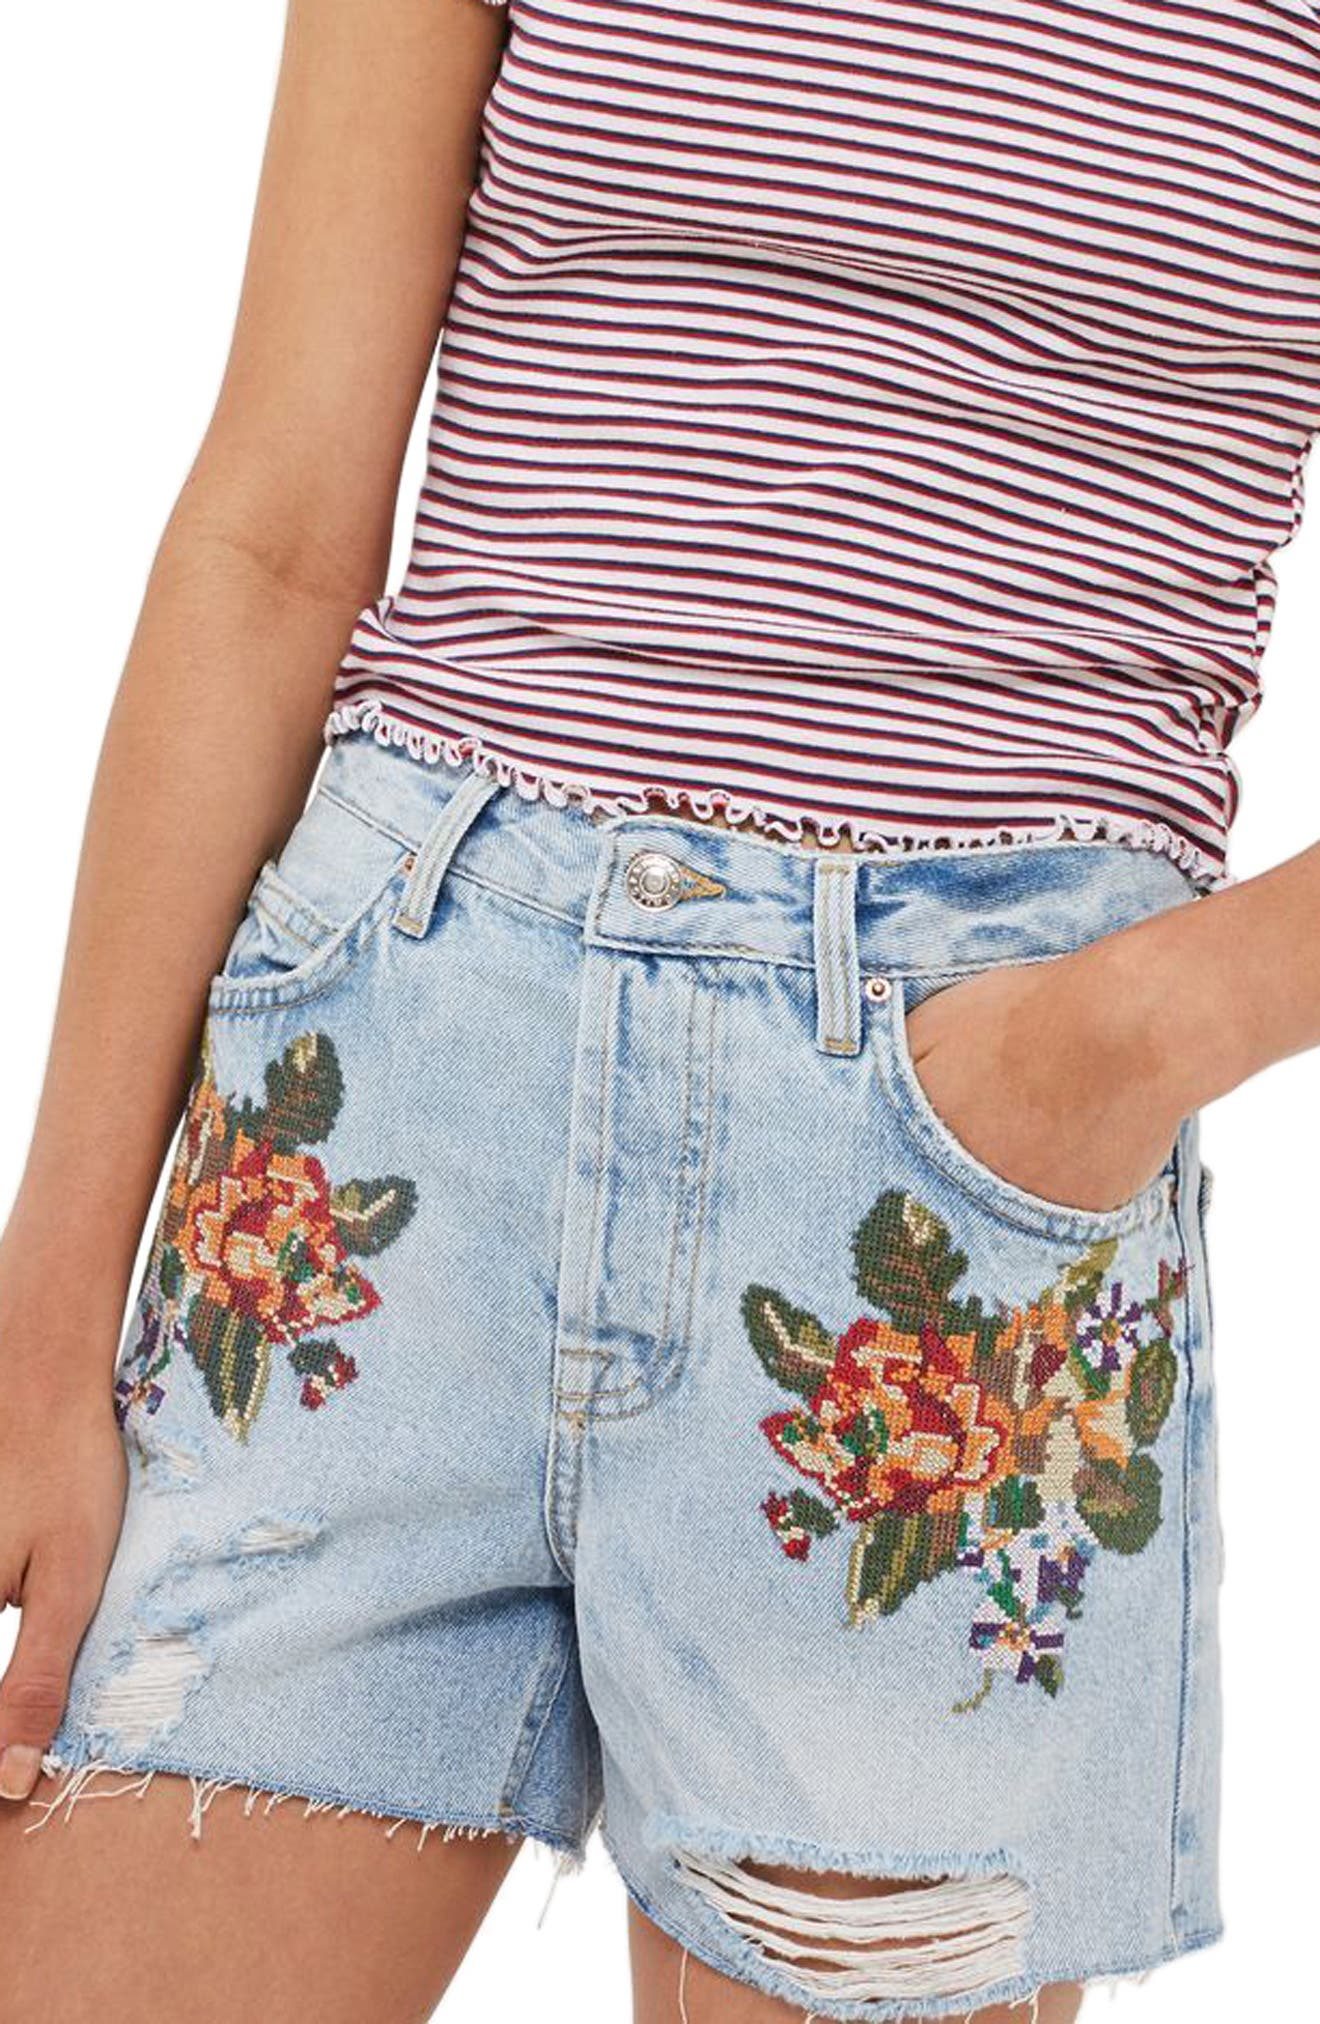 Topshop Ashley Cross Stitch Vintage Floral Denim Shorts